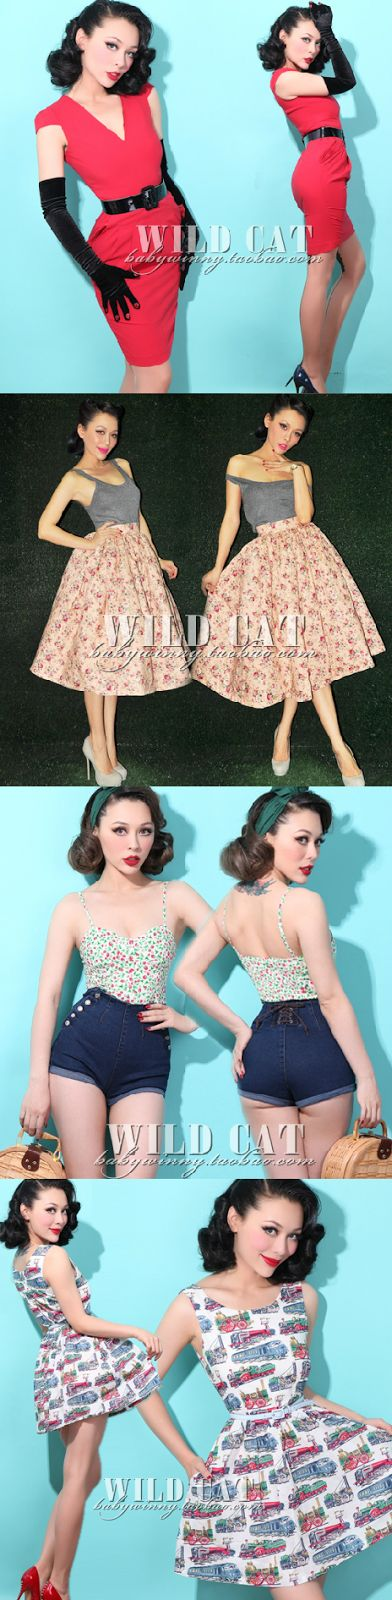 Lifestyle of a Pin-up Girl: Pin-up Girl Winny